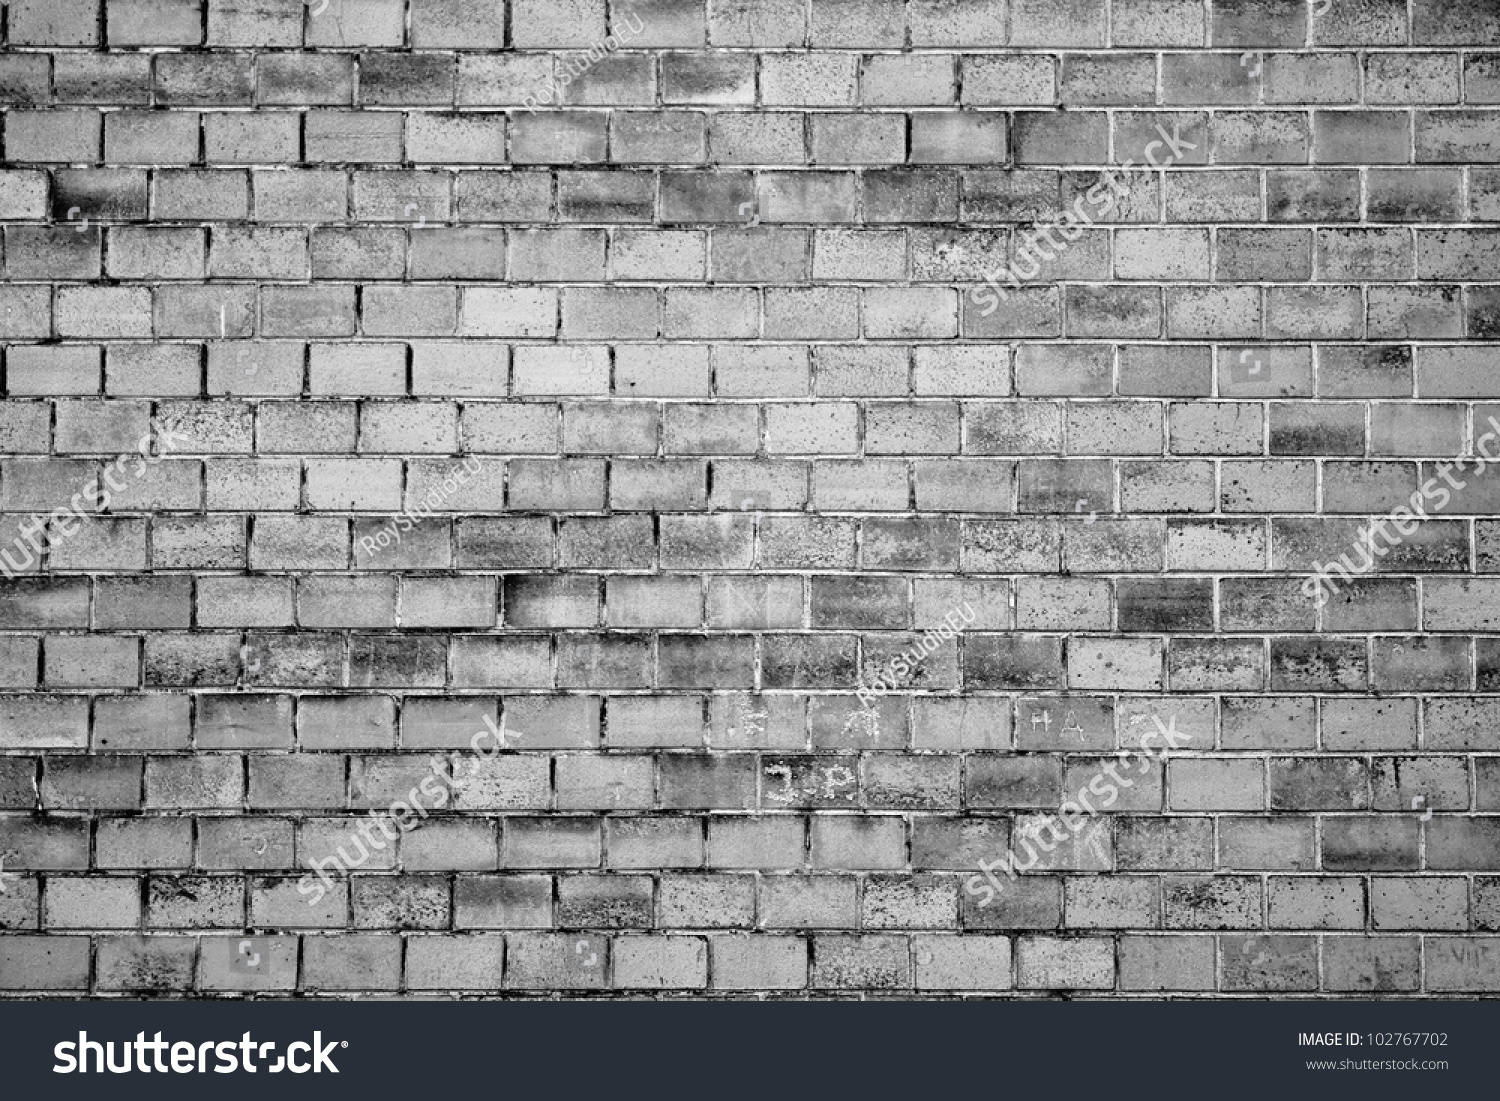 Black And White Brick Wall Texture Grunge Background Stock